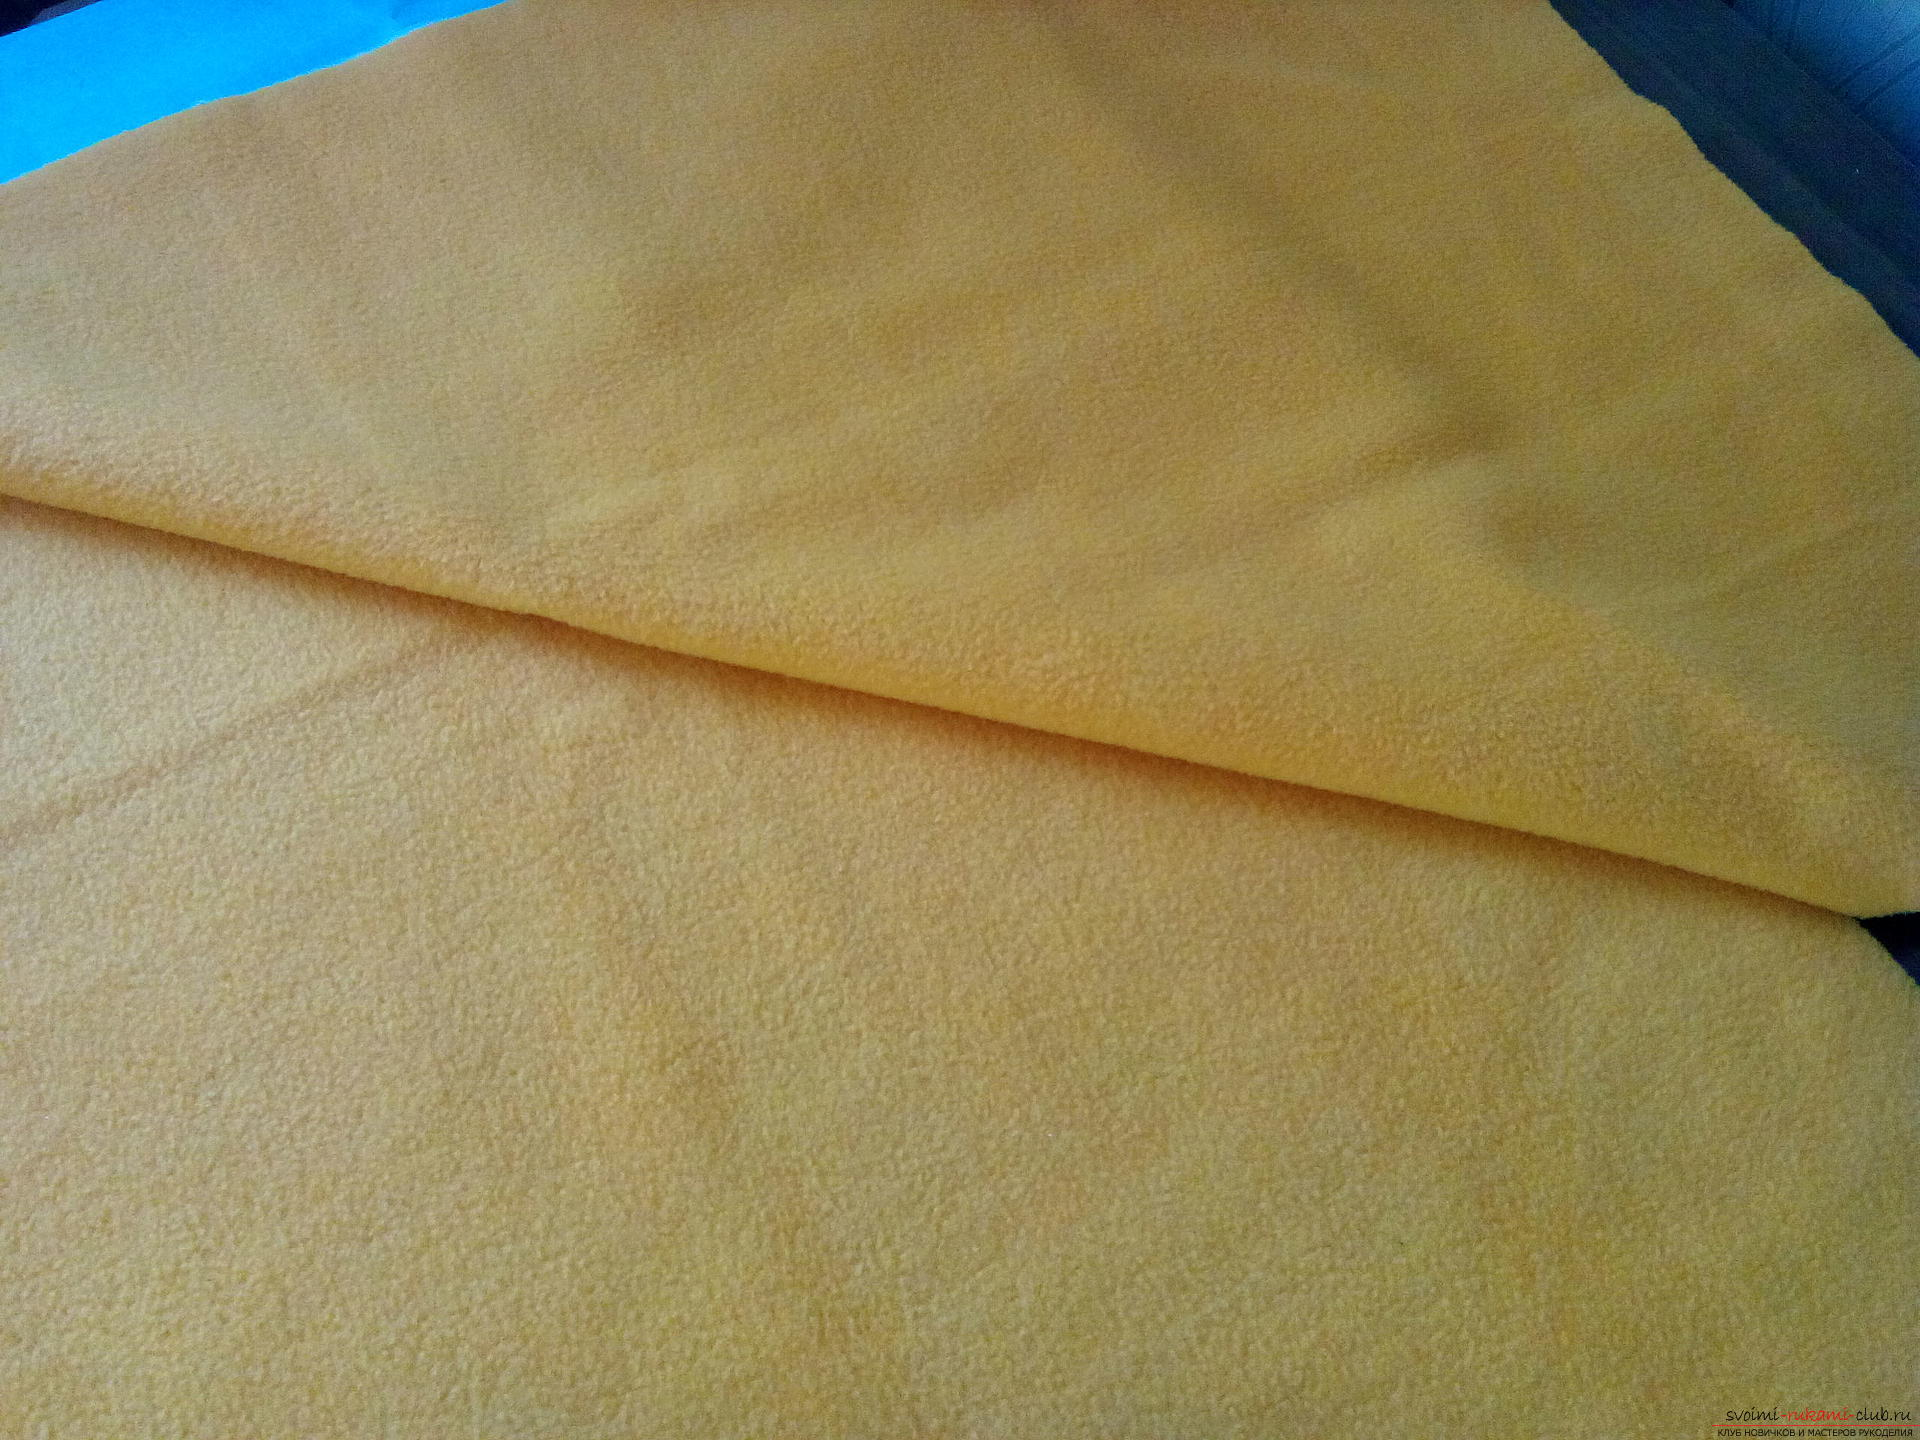 Master class for making envelopes for a newborn - do it yourself. Photo # 2